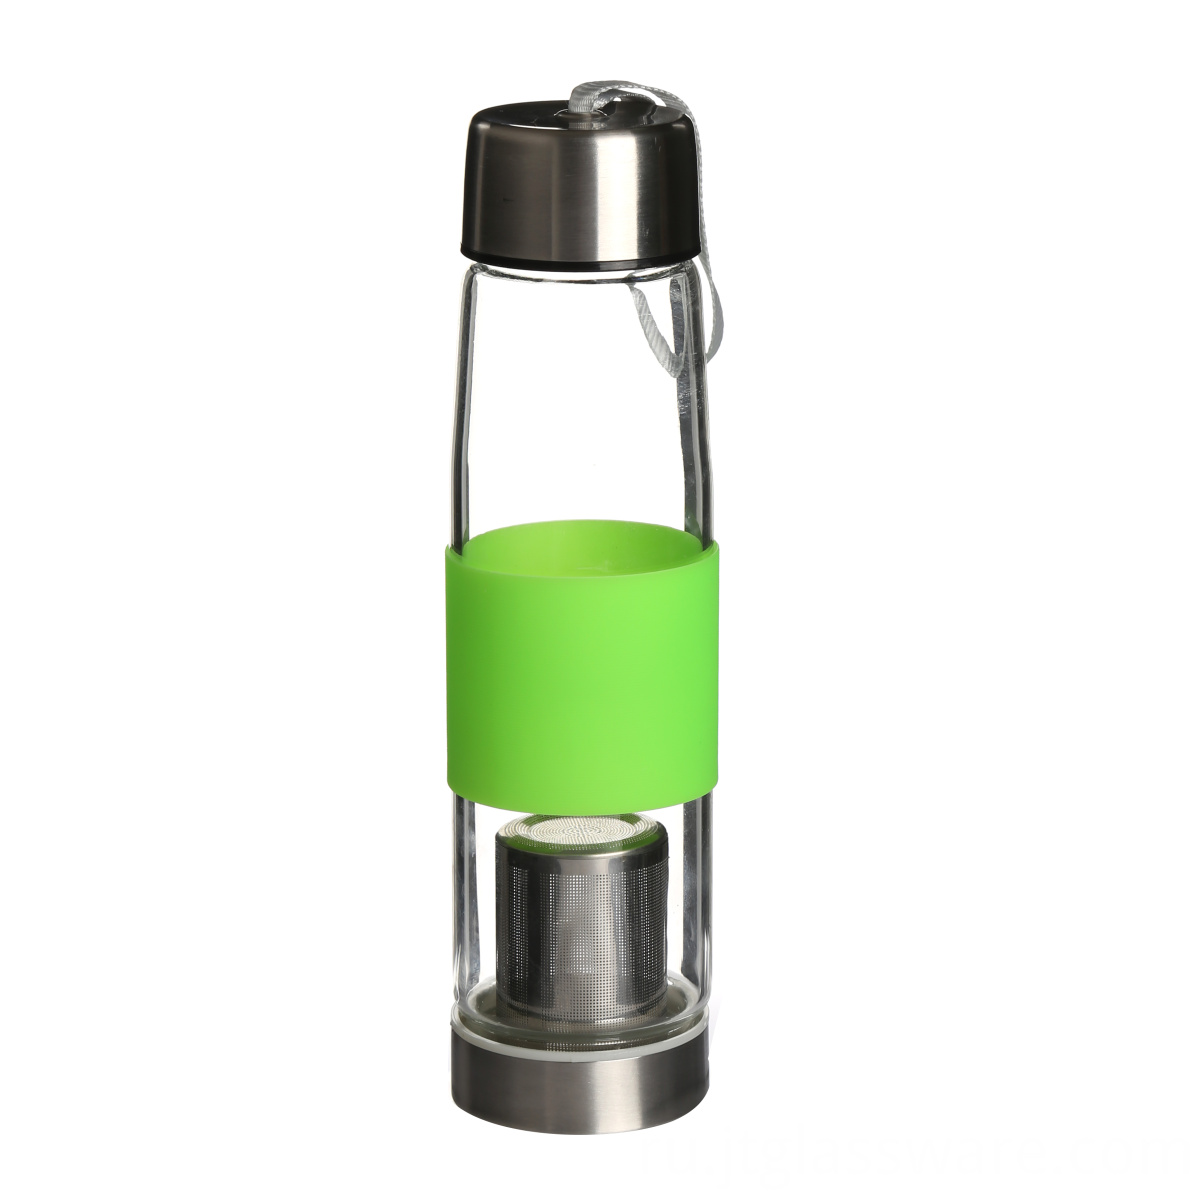 BPA free&Eco-friendly,leakproof glass bottle